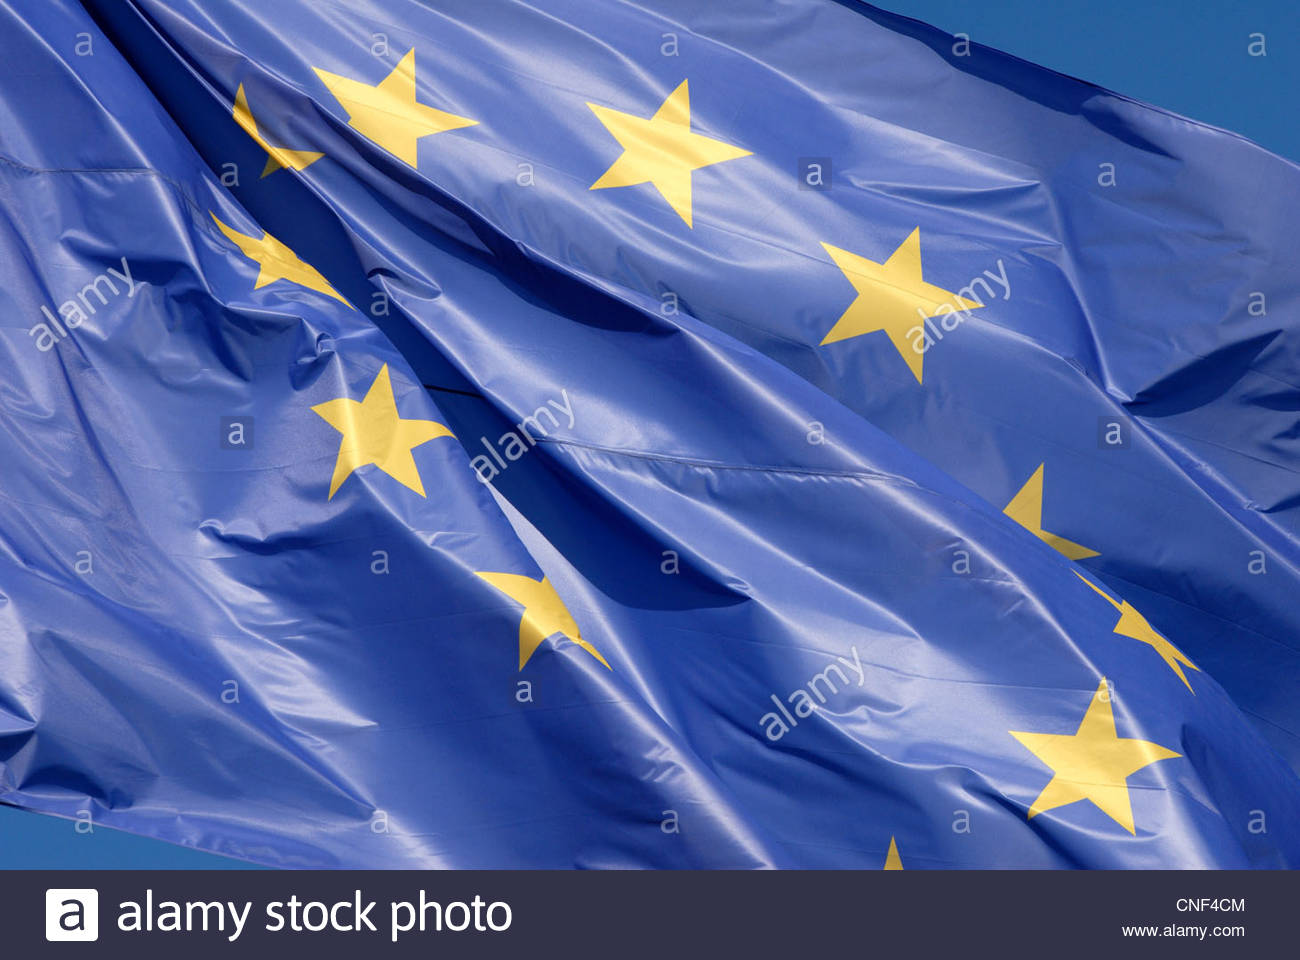 Amsterdam The Netherlands The flag of the European Union waving in the wind. - Stock Image